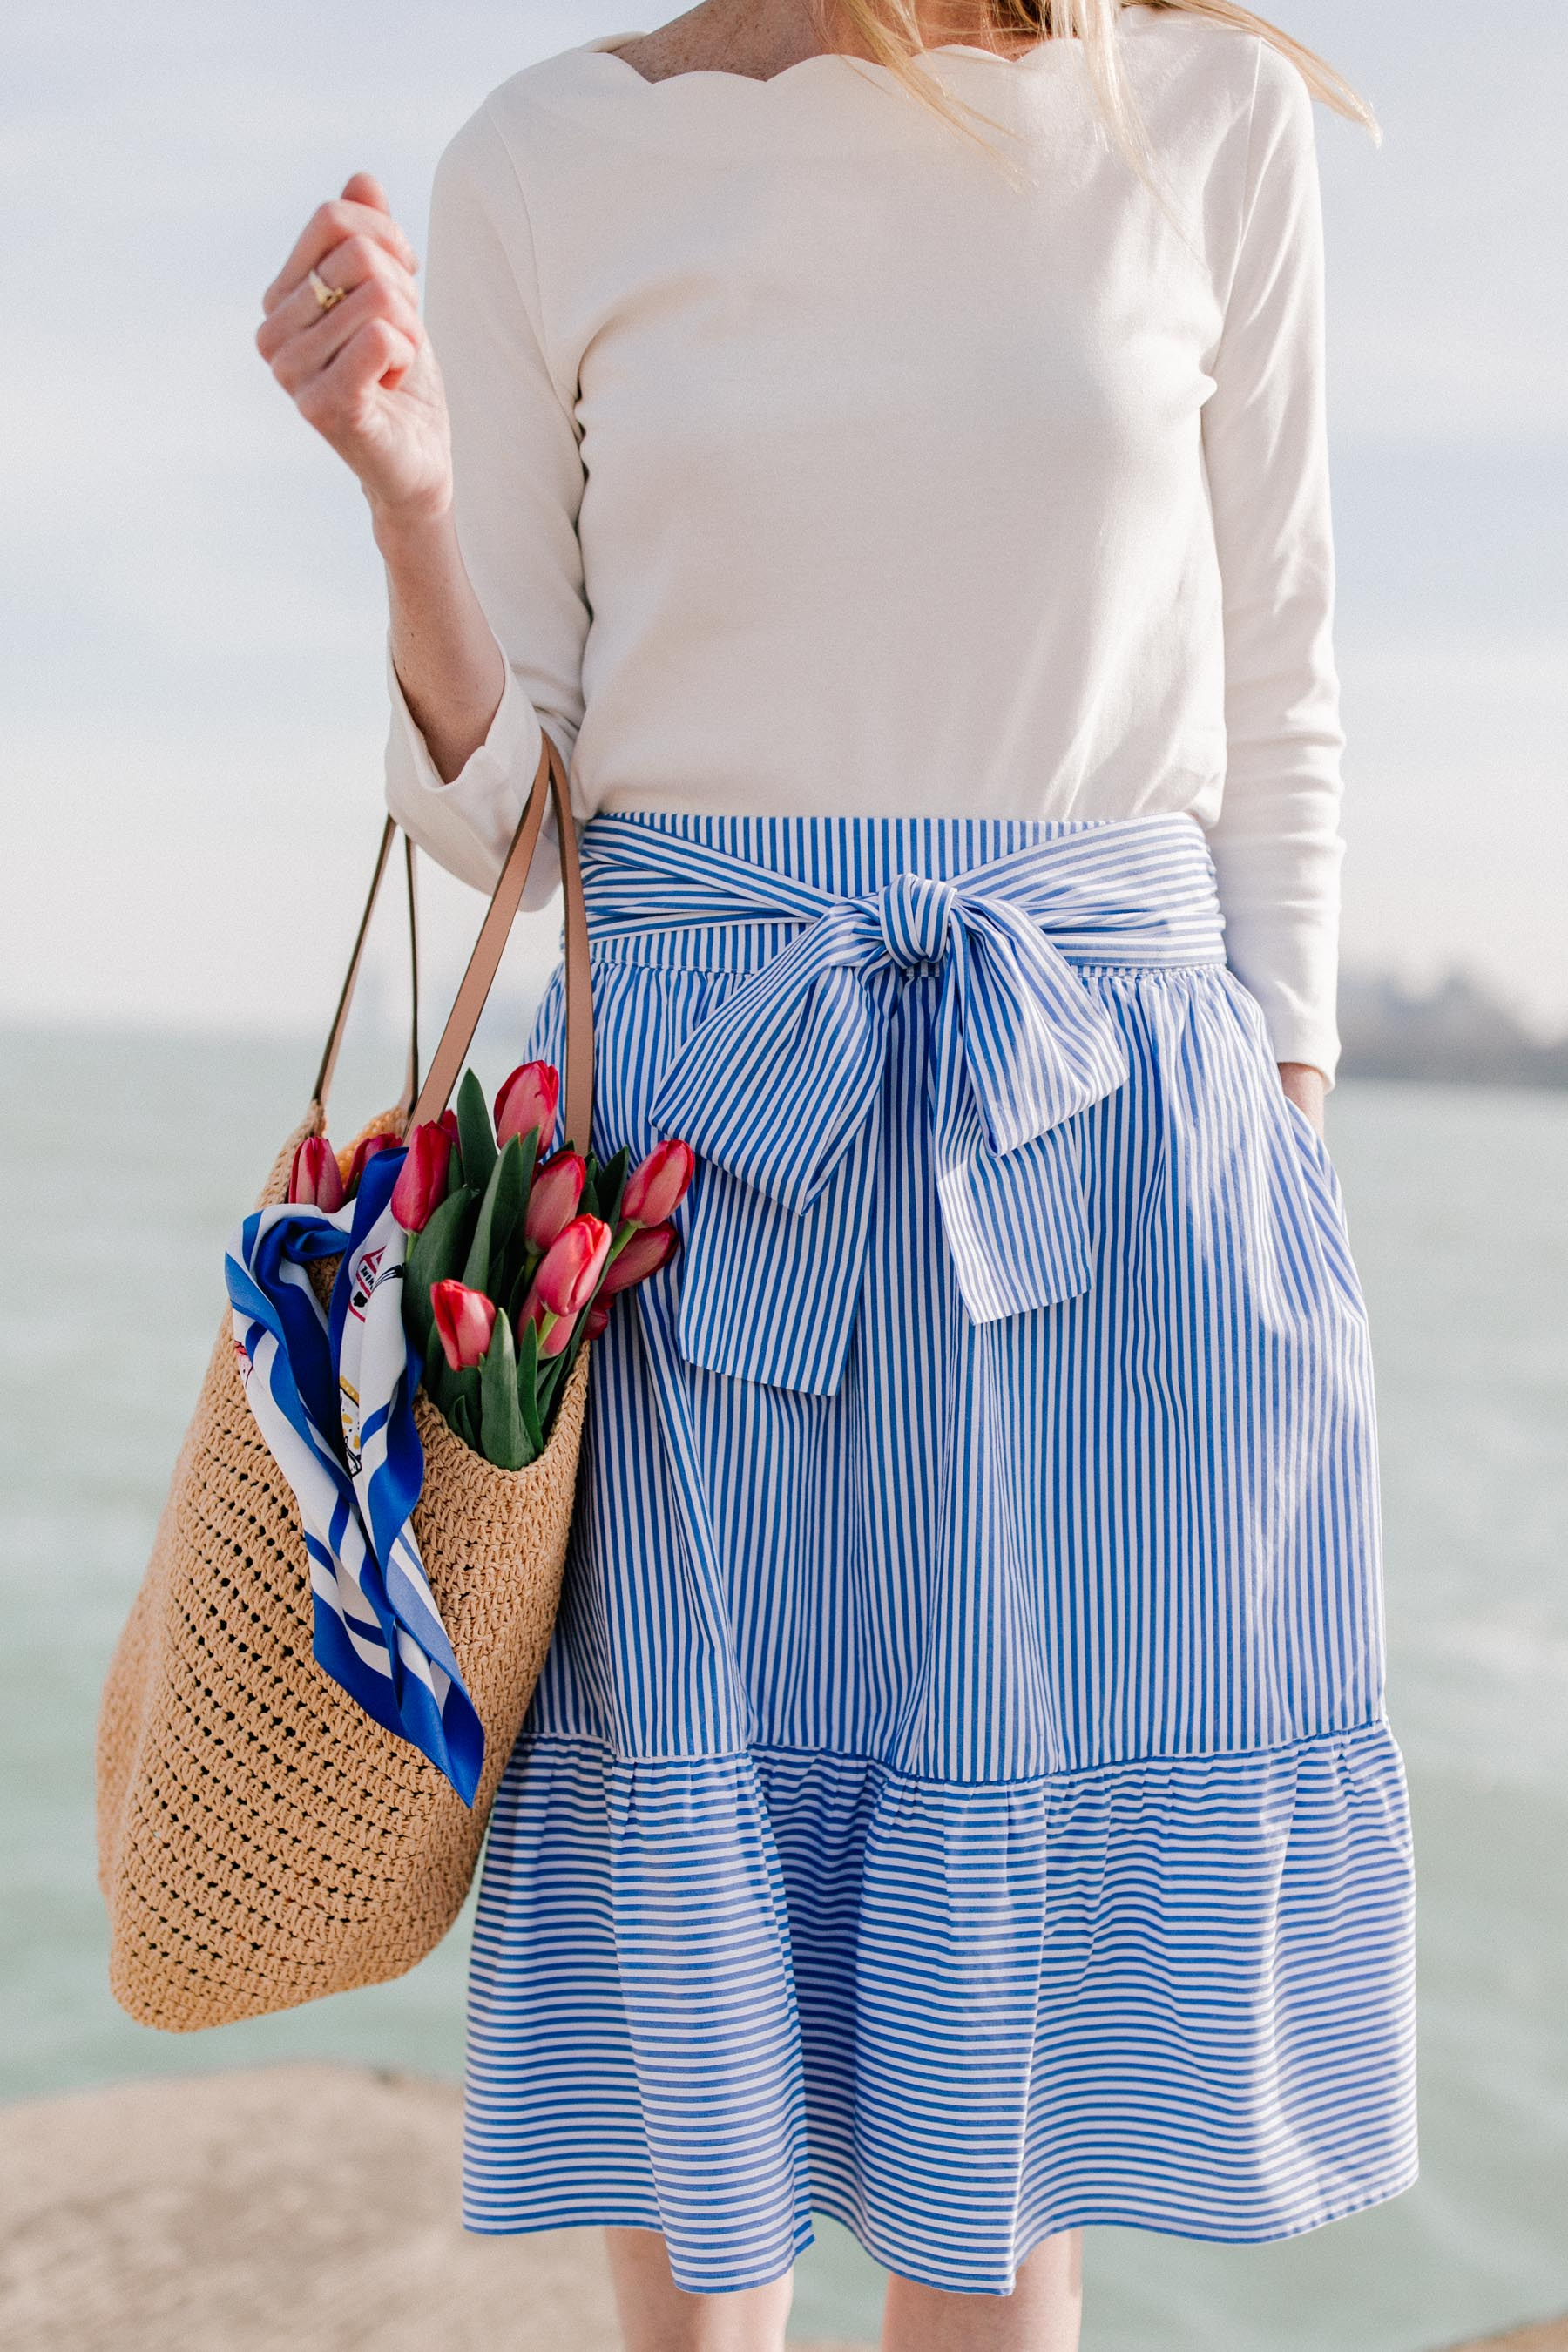 Easter Weekend Outfits: A Few Ideas For Preppy Easter Outfits